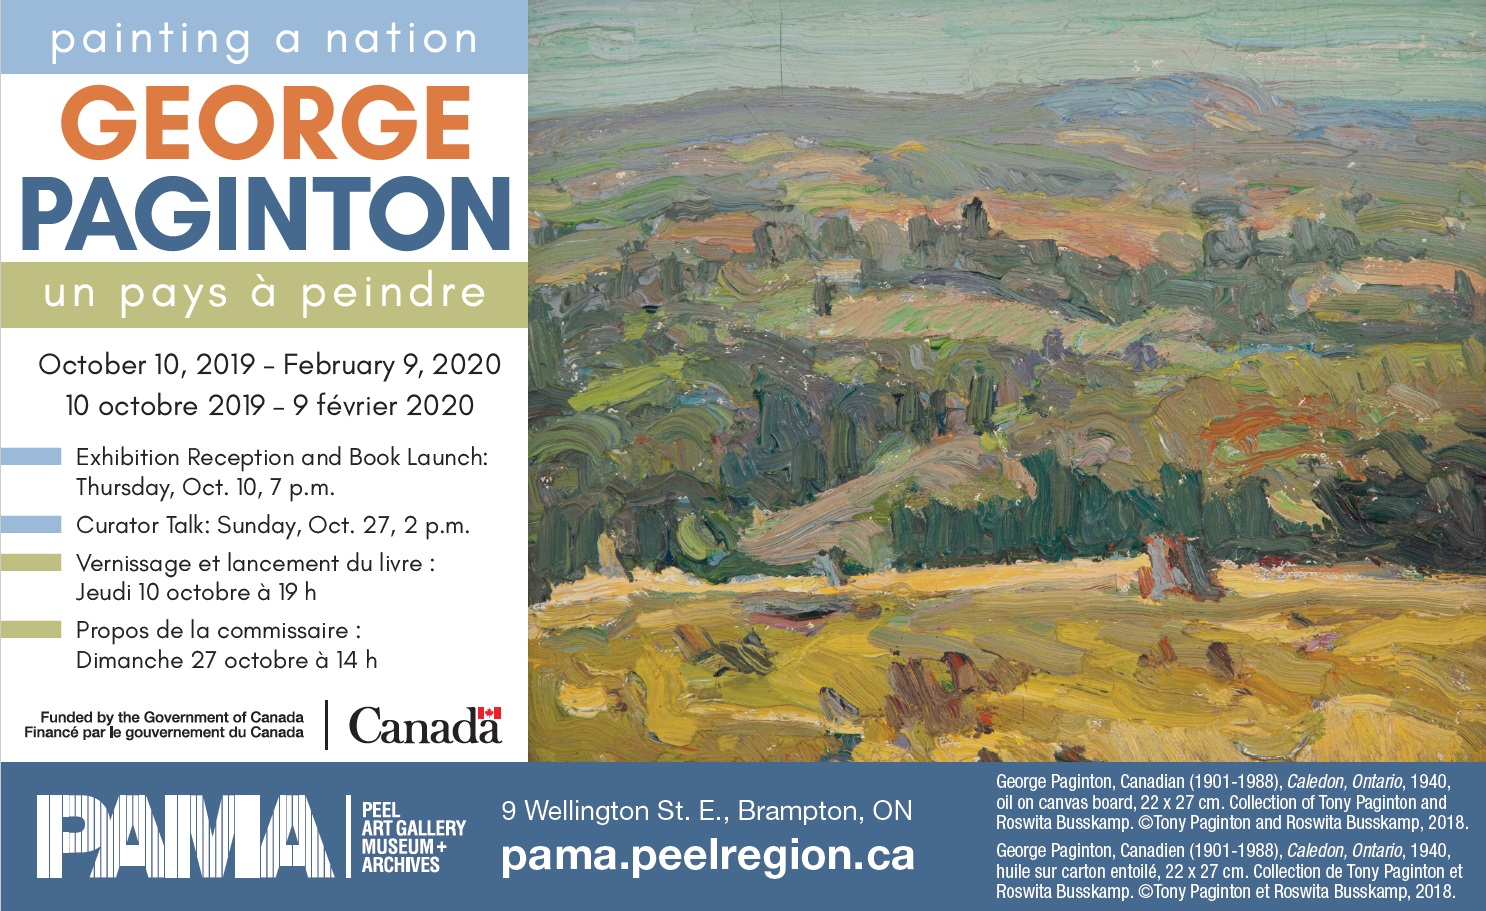 George Paginton: Painting a Nation Exhibition | In The Hills